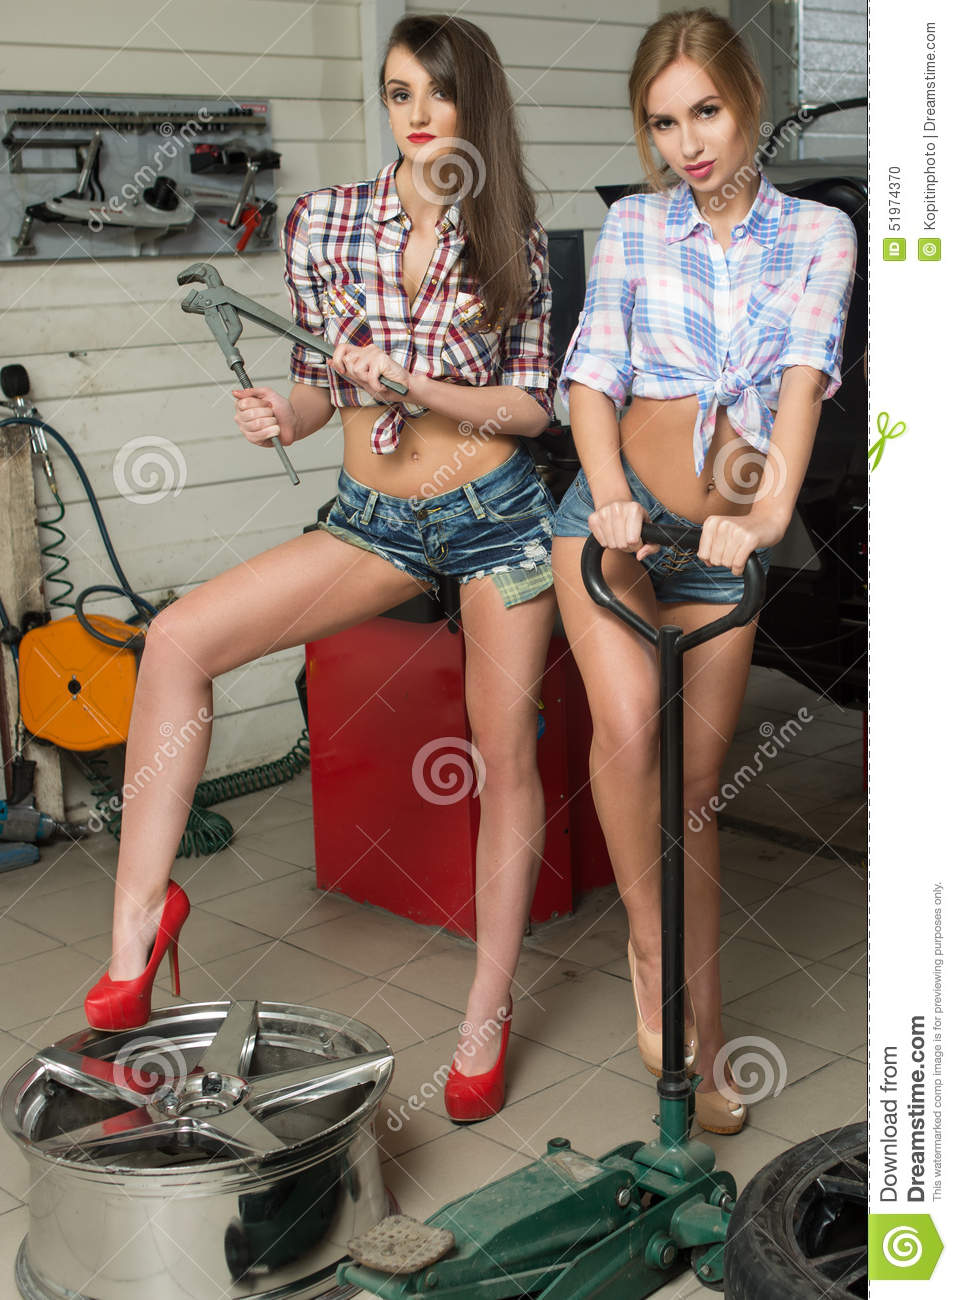 Classic Car Wallpaper Murals Two Girls Mechanic Replace Tires On Wheels Stock Photo